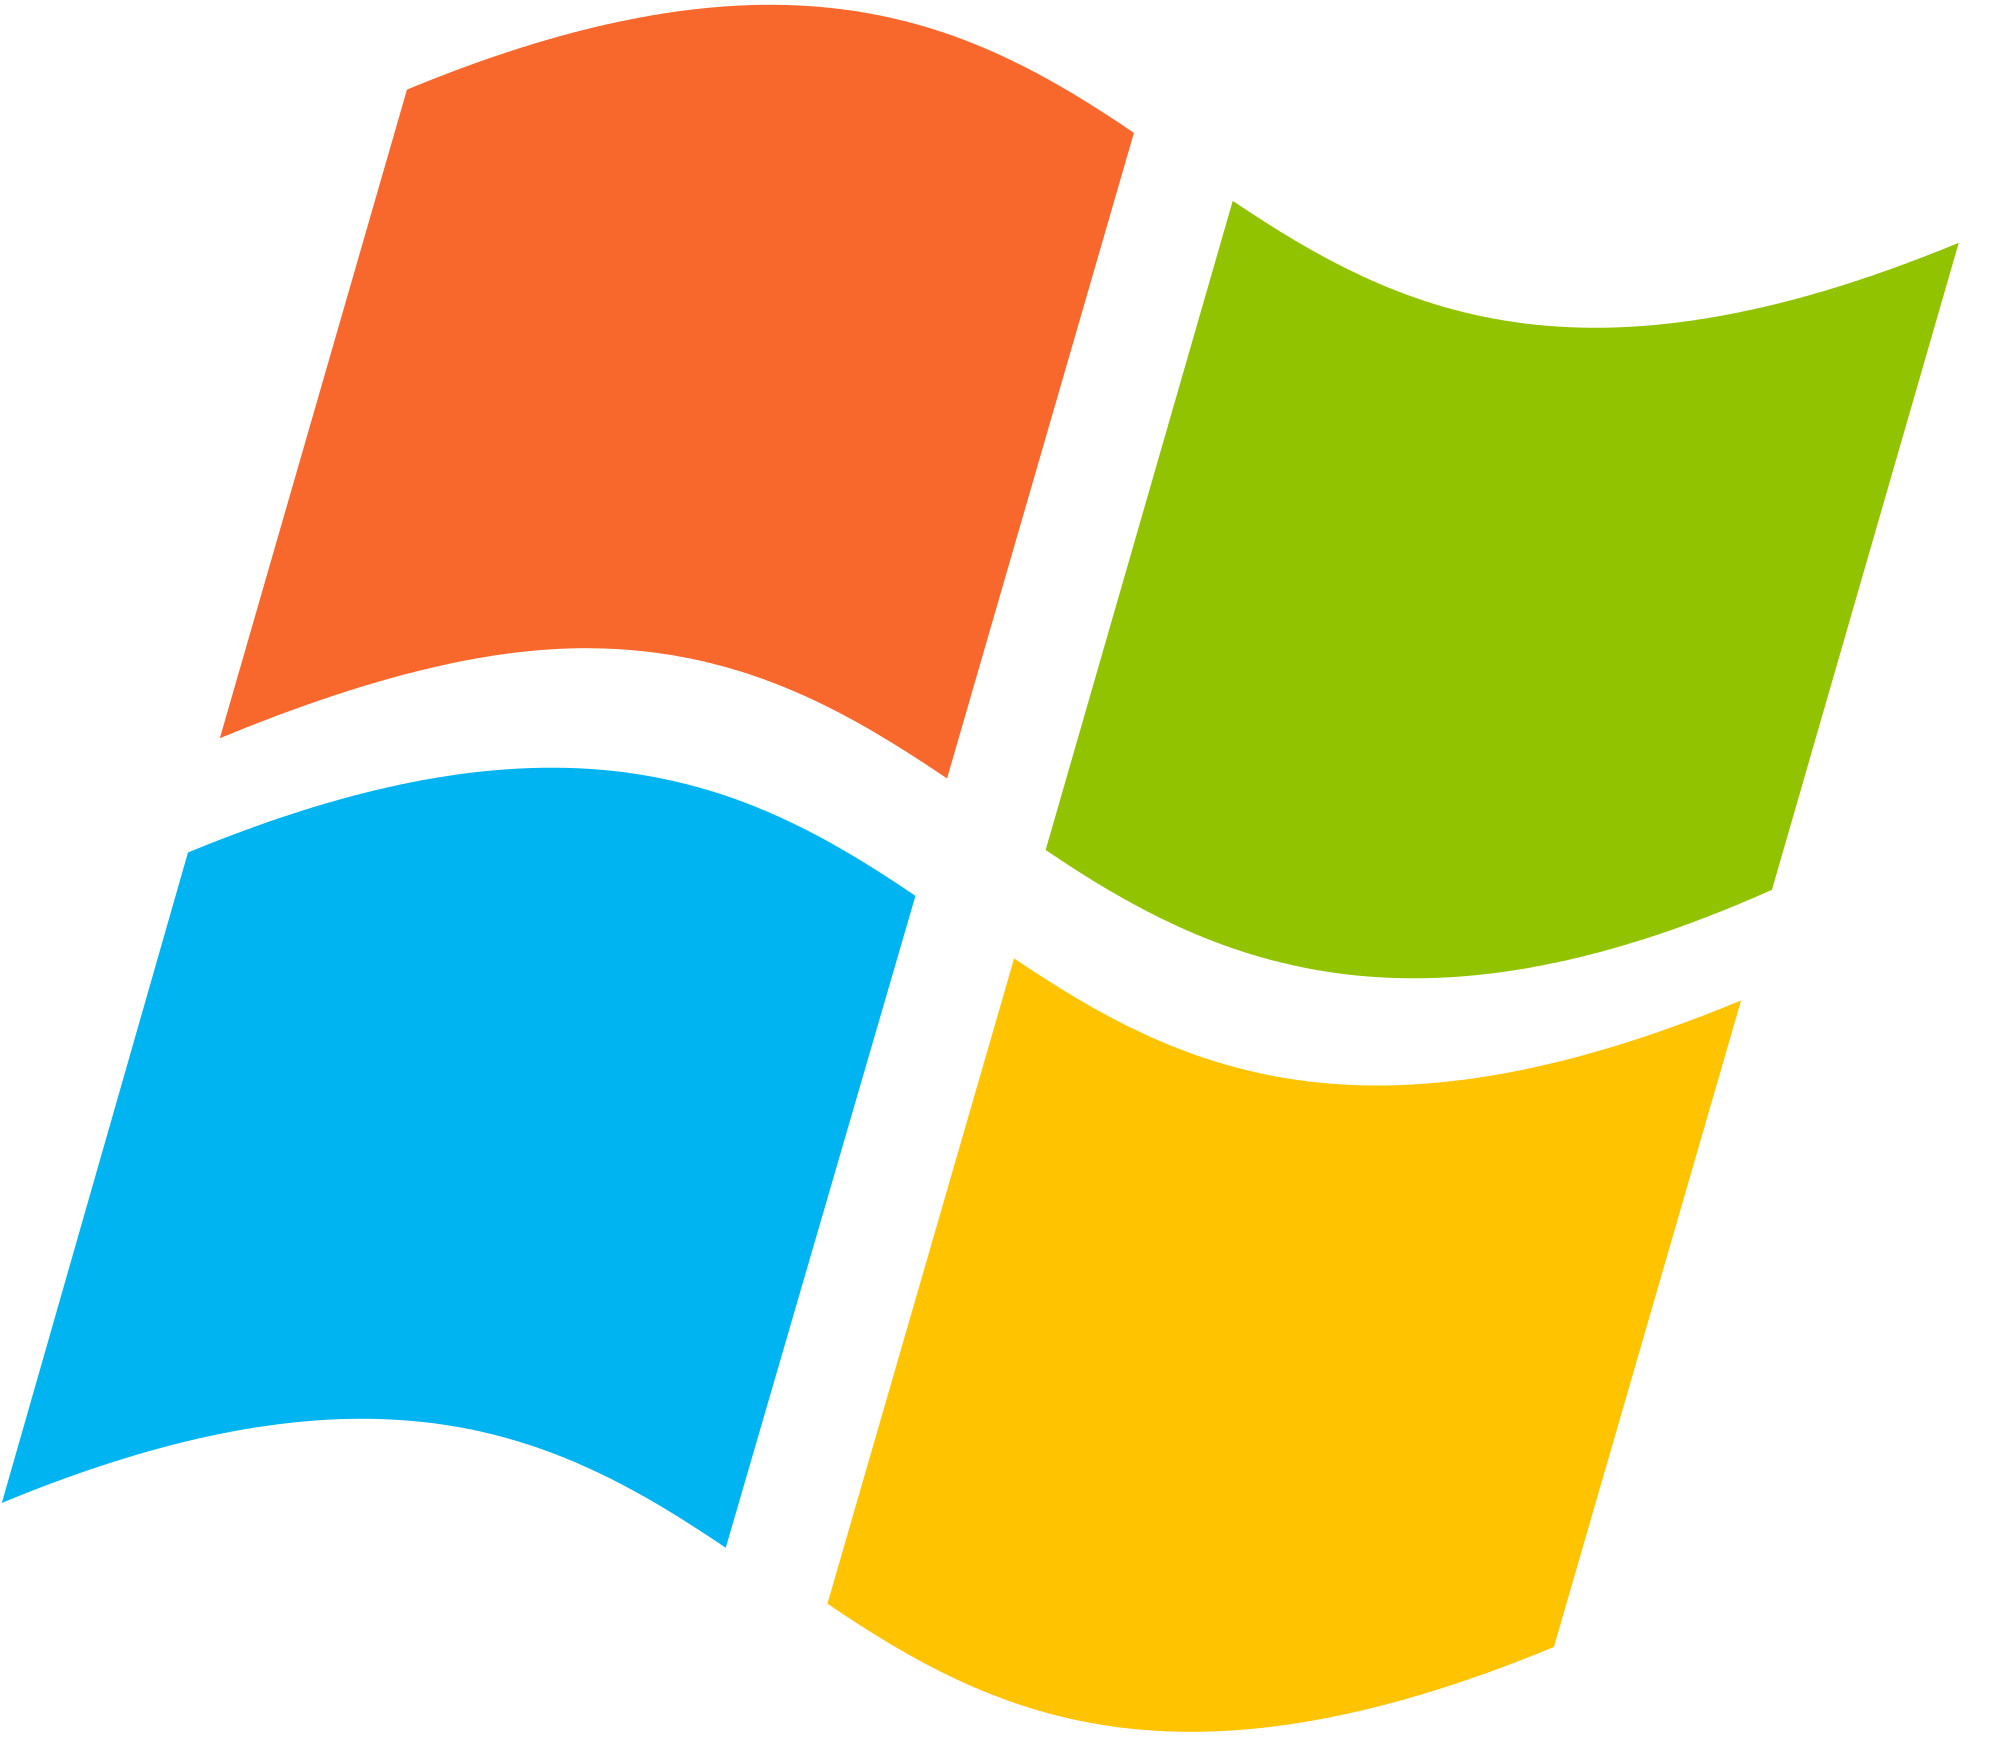 Windows logo - 2002u20132012 (Multicolored).svg